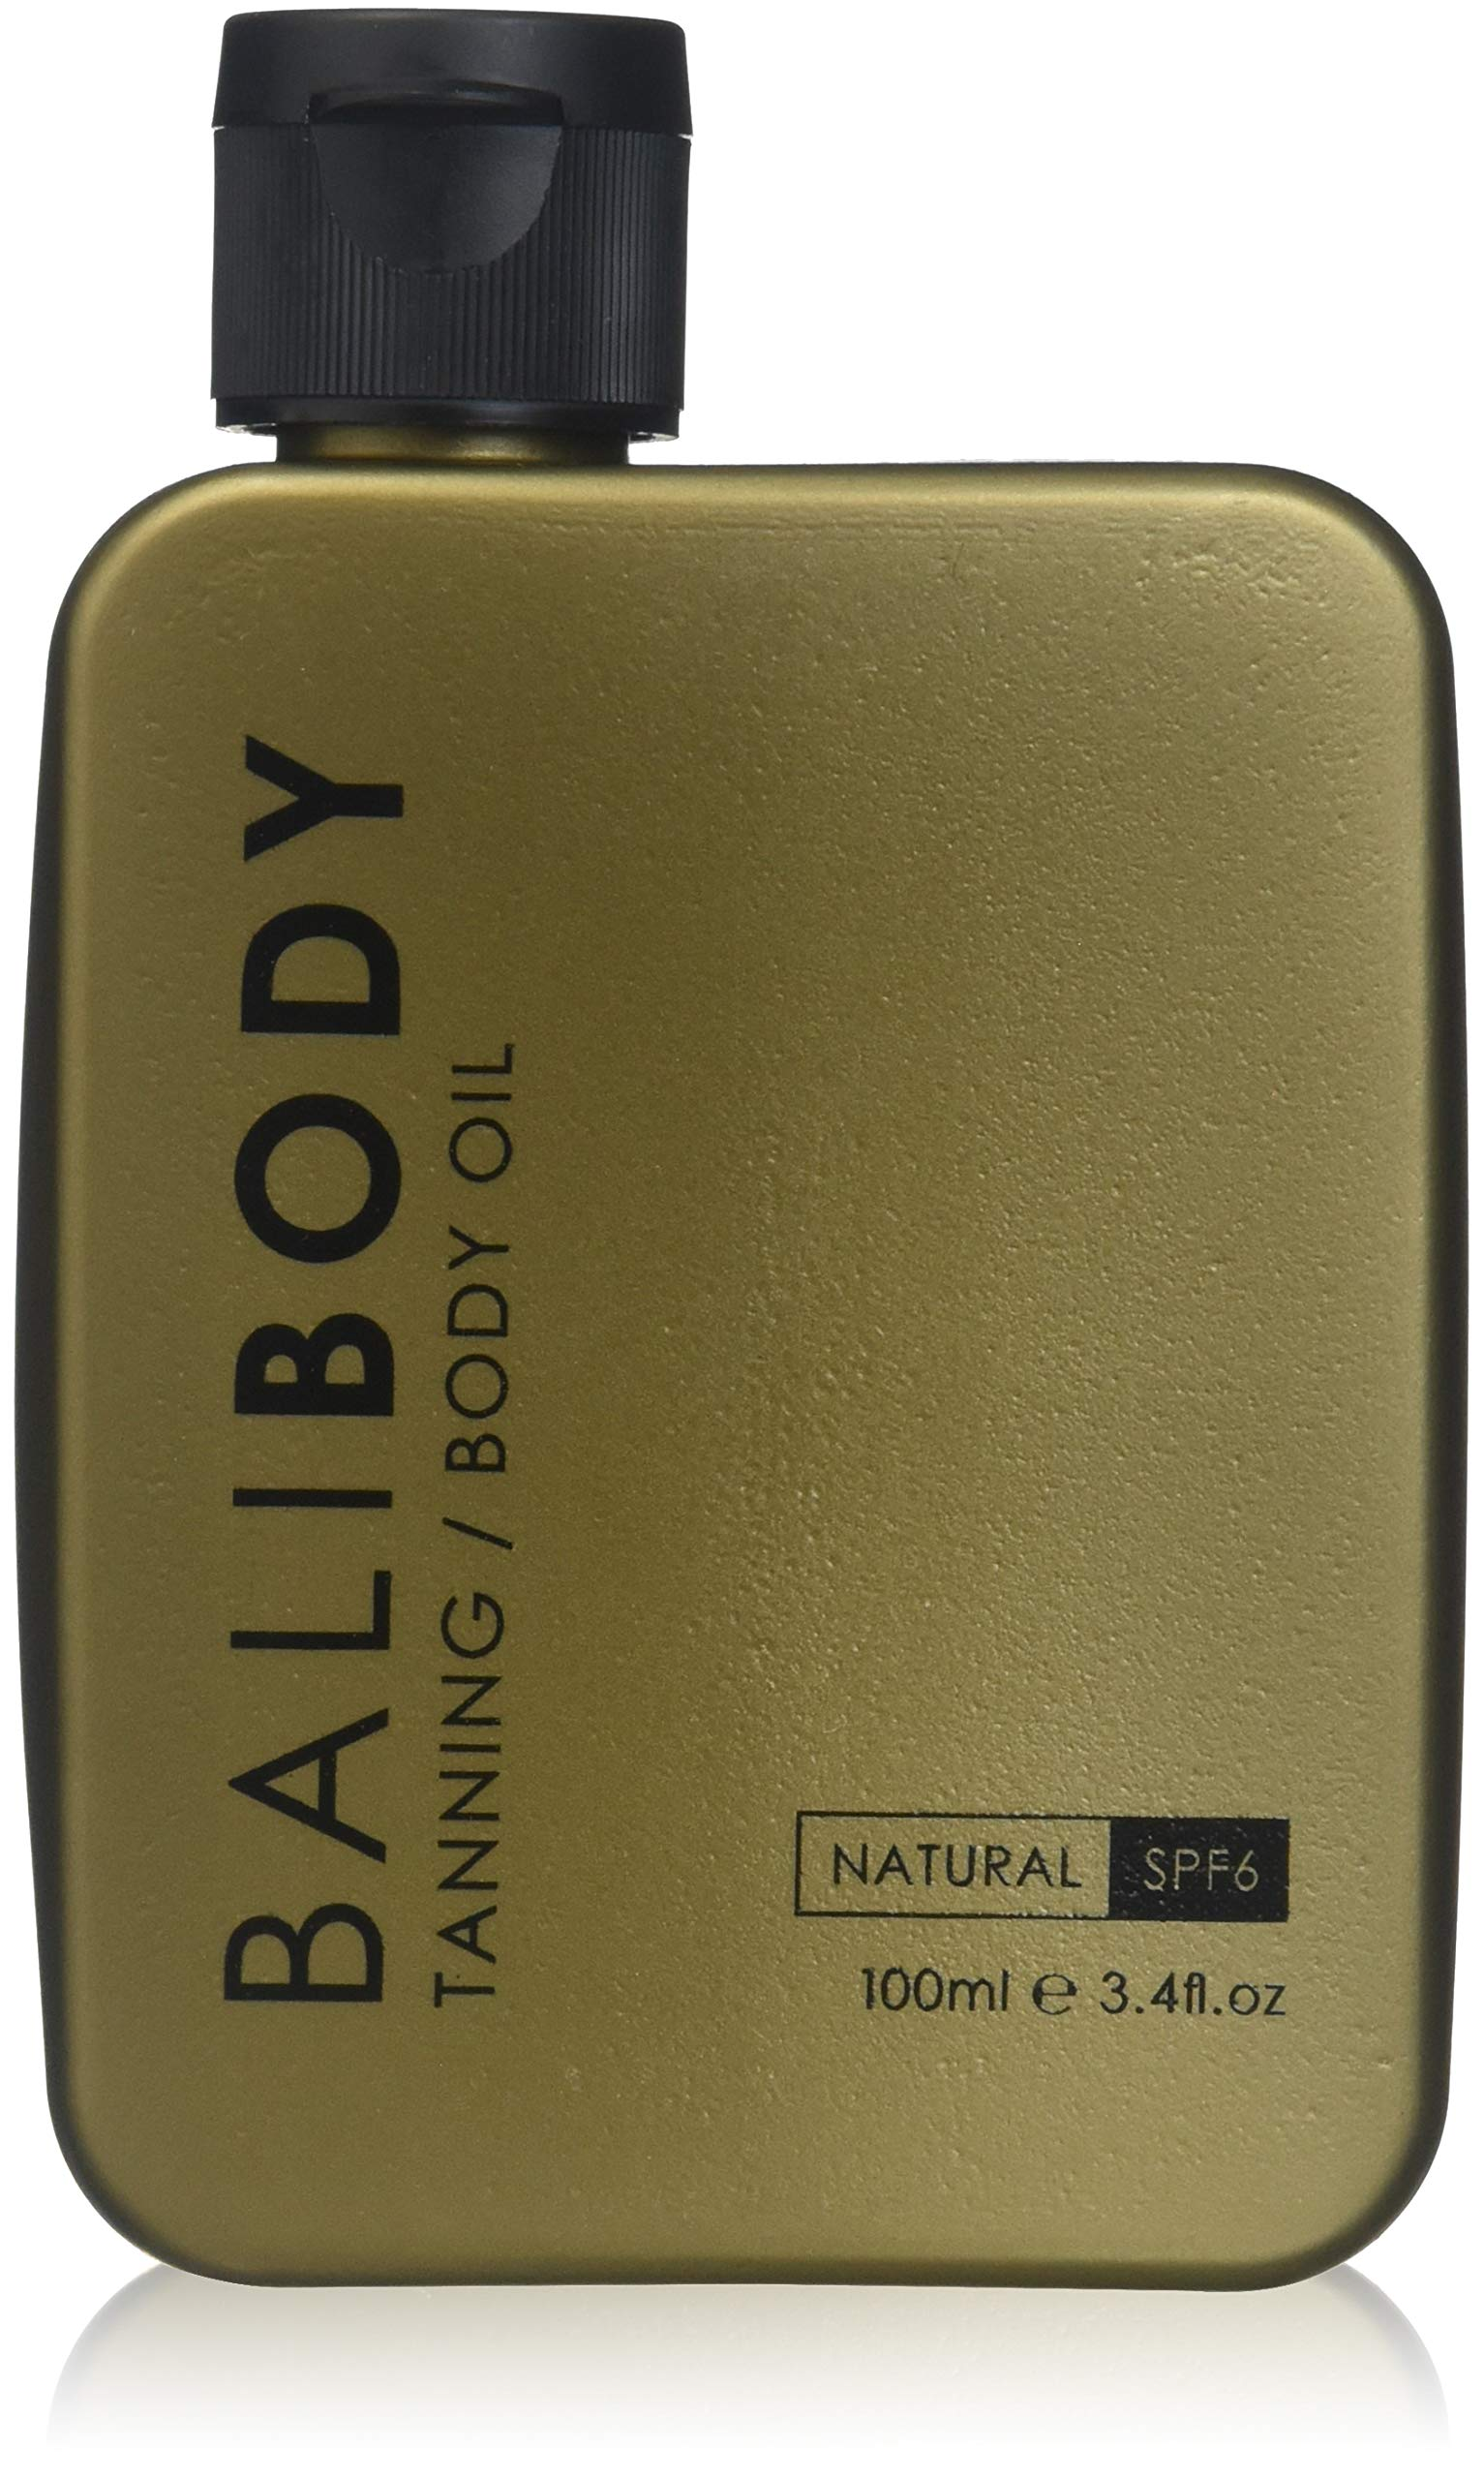 BALI BODY ORIGINAL NATURAL TANNING AND BODY OIL 110 ml by Bali Designs (Image #1)